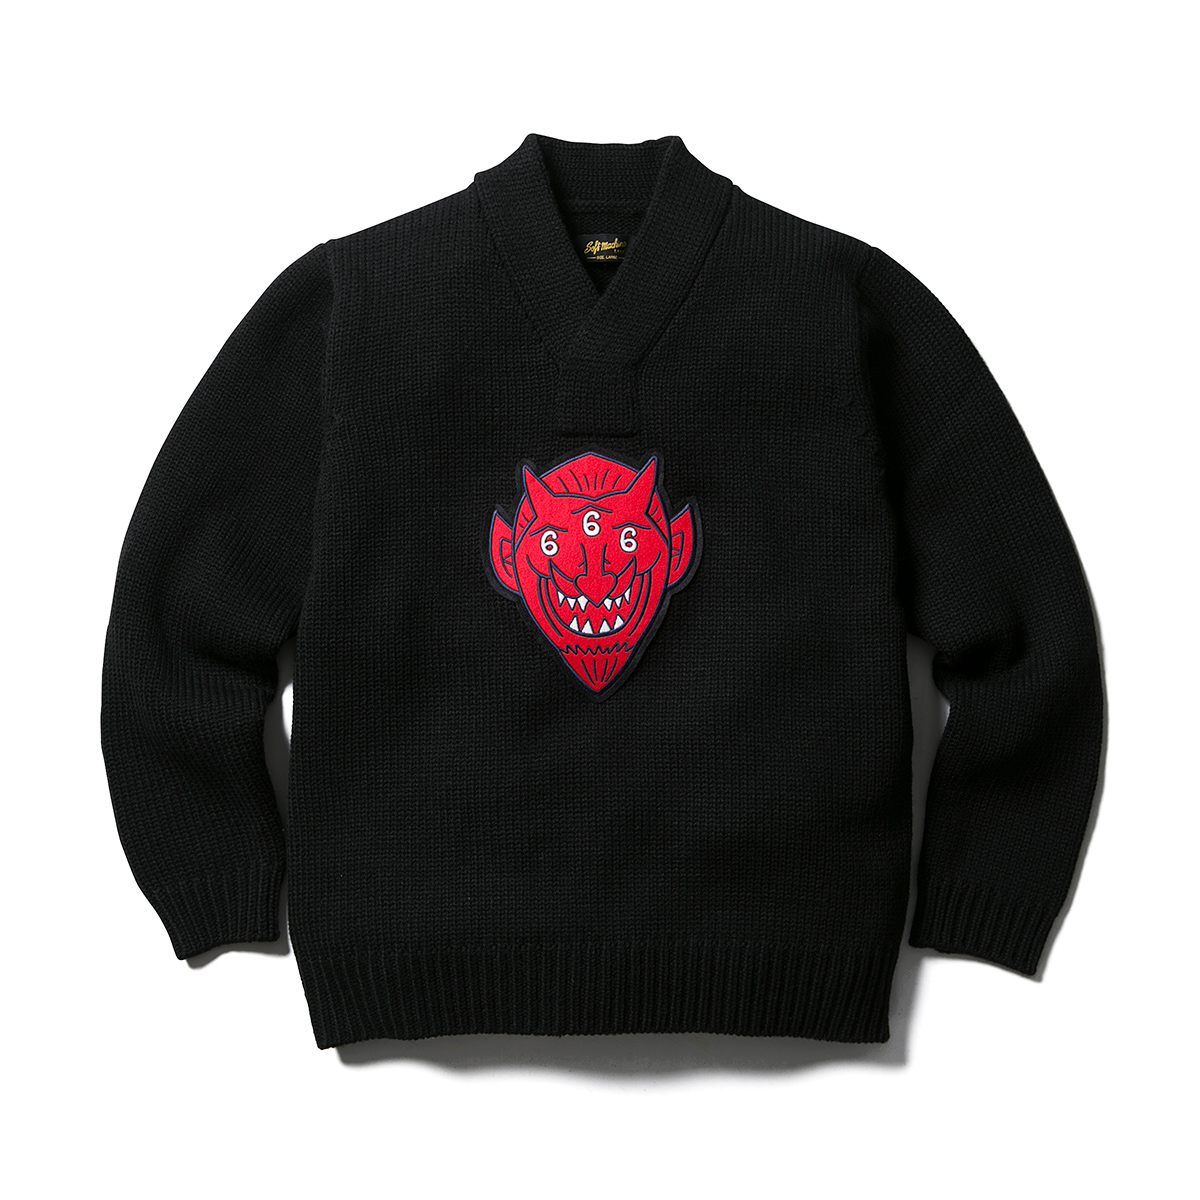 DIABLO SWEATER